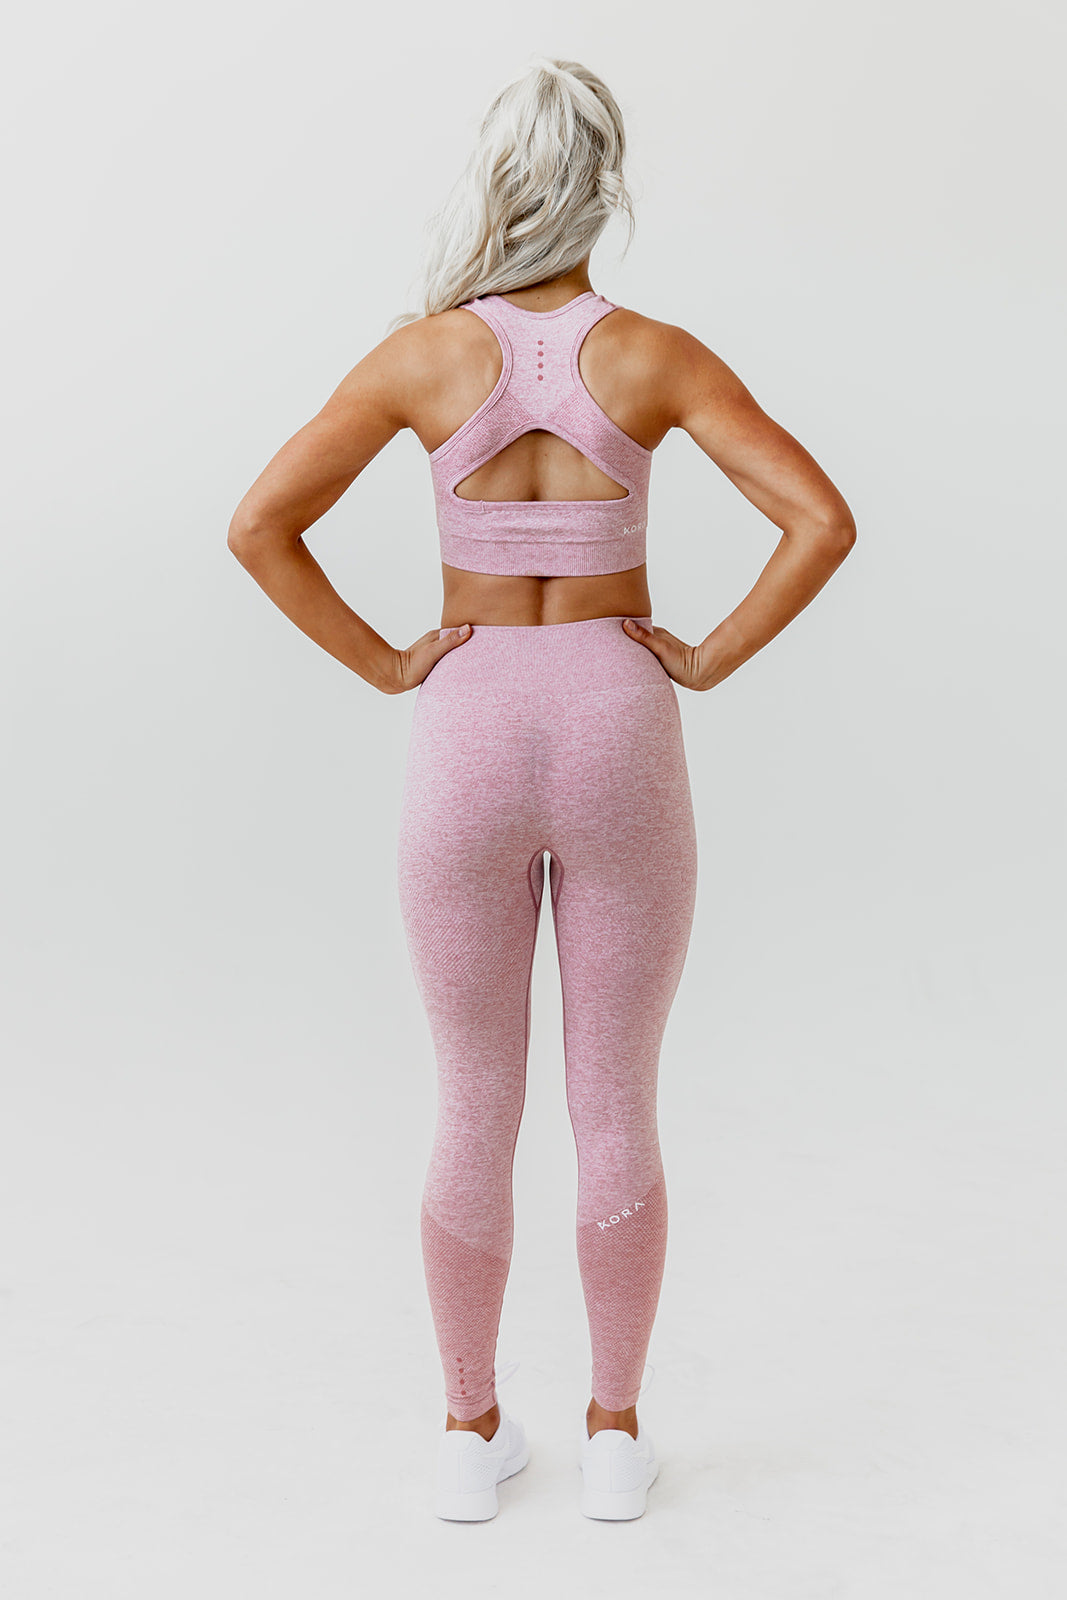 KORA Seamless Sports Bra - Dusty Rose - Final Sale